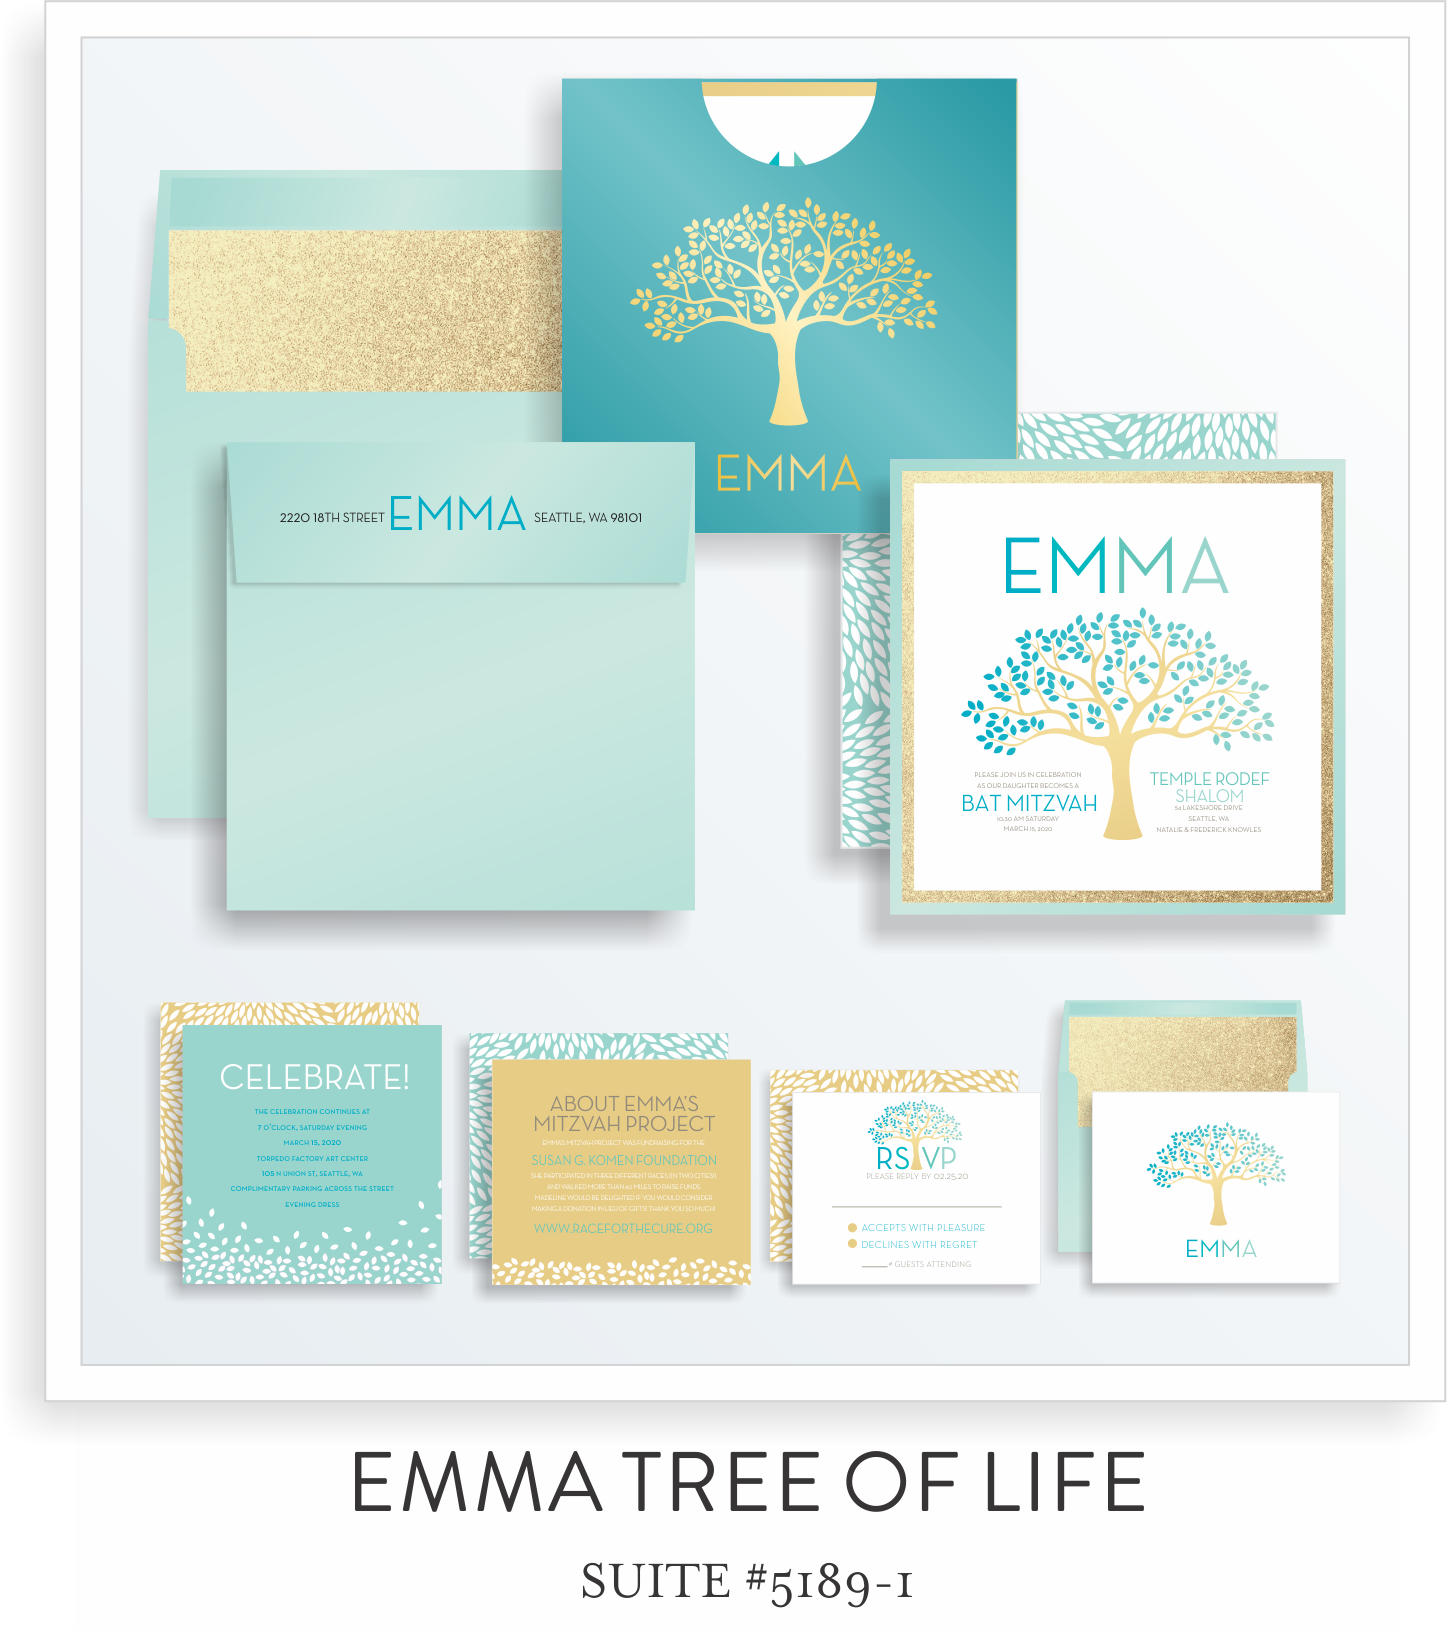 5189-1 EMMA TREE OF LIFE SUITE THUMB.png